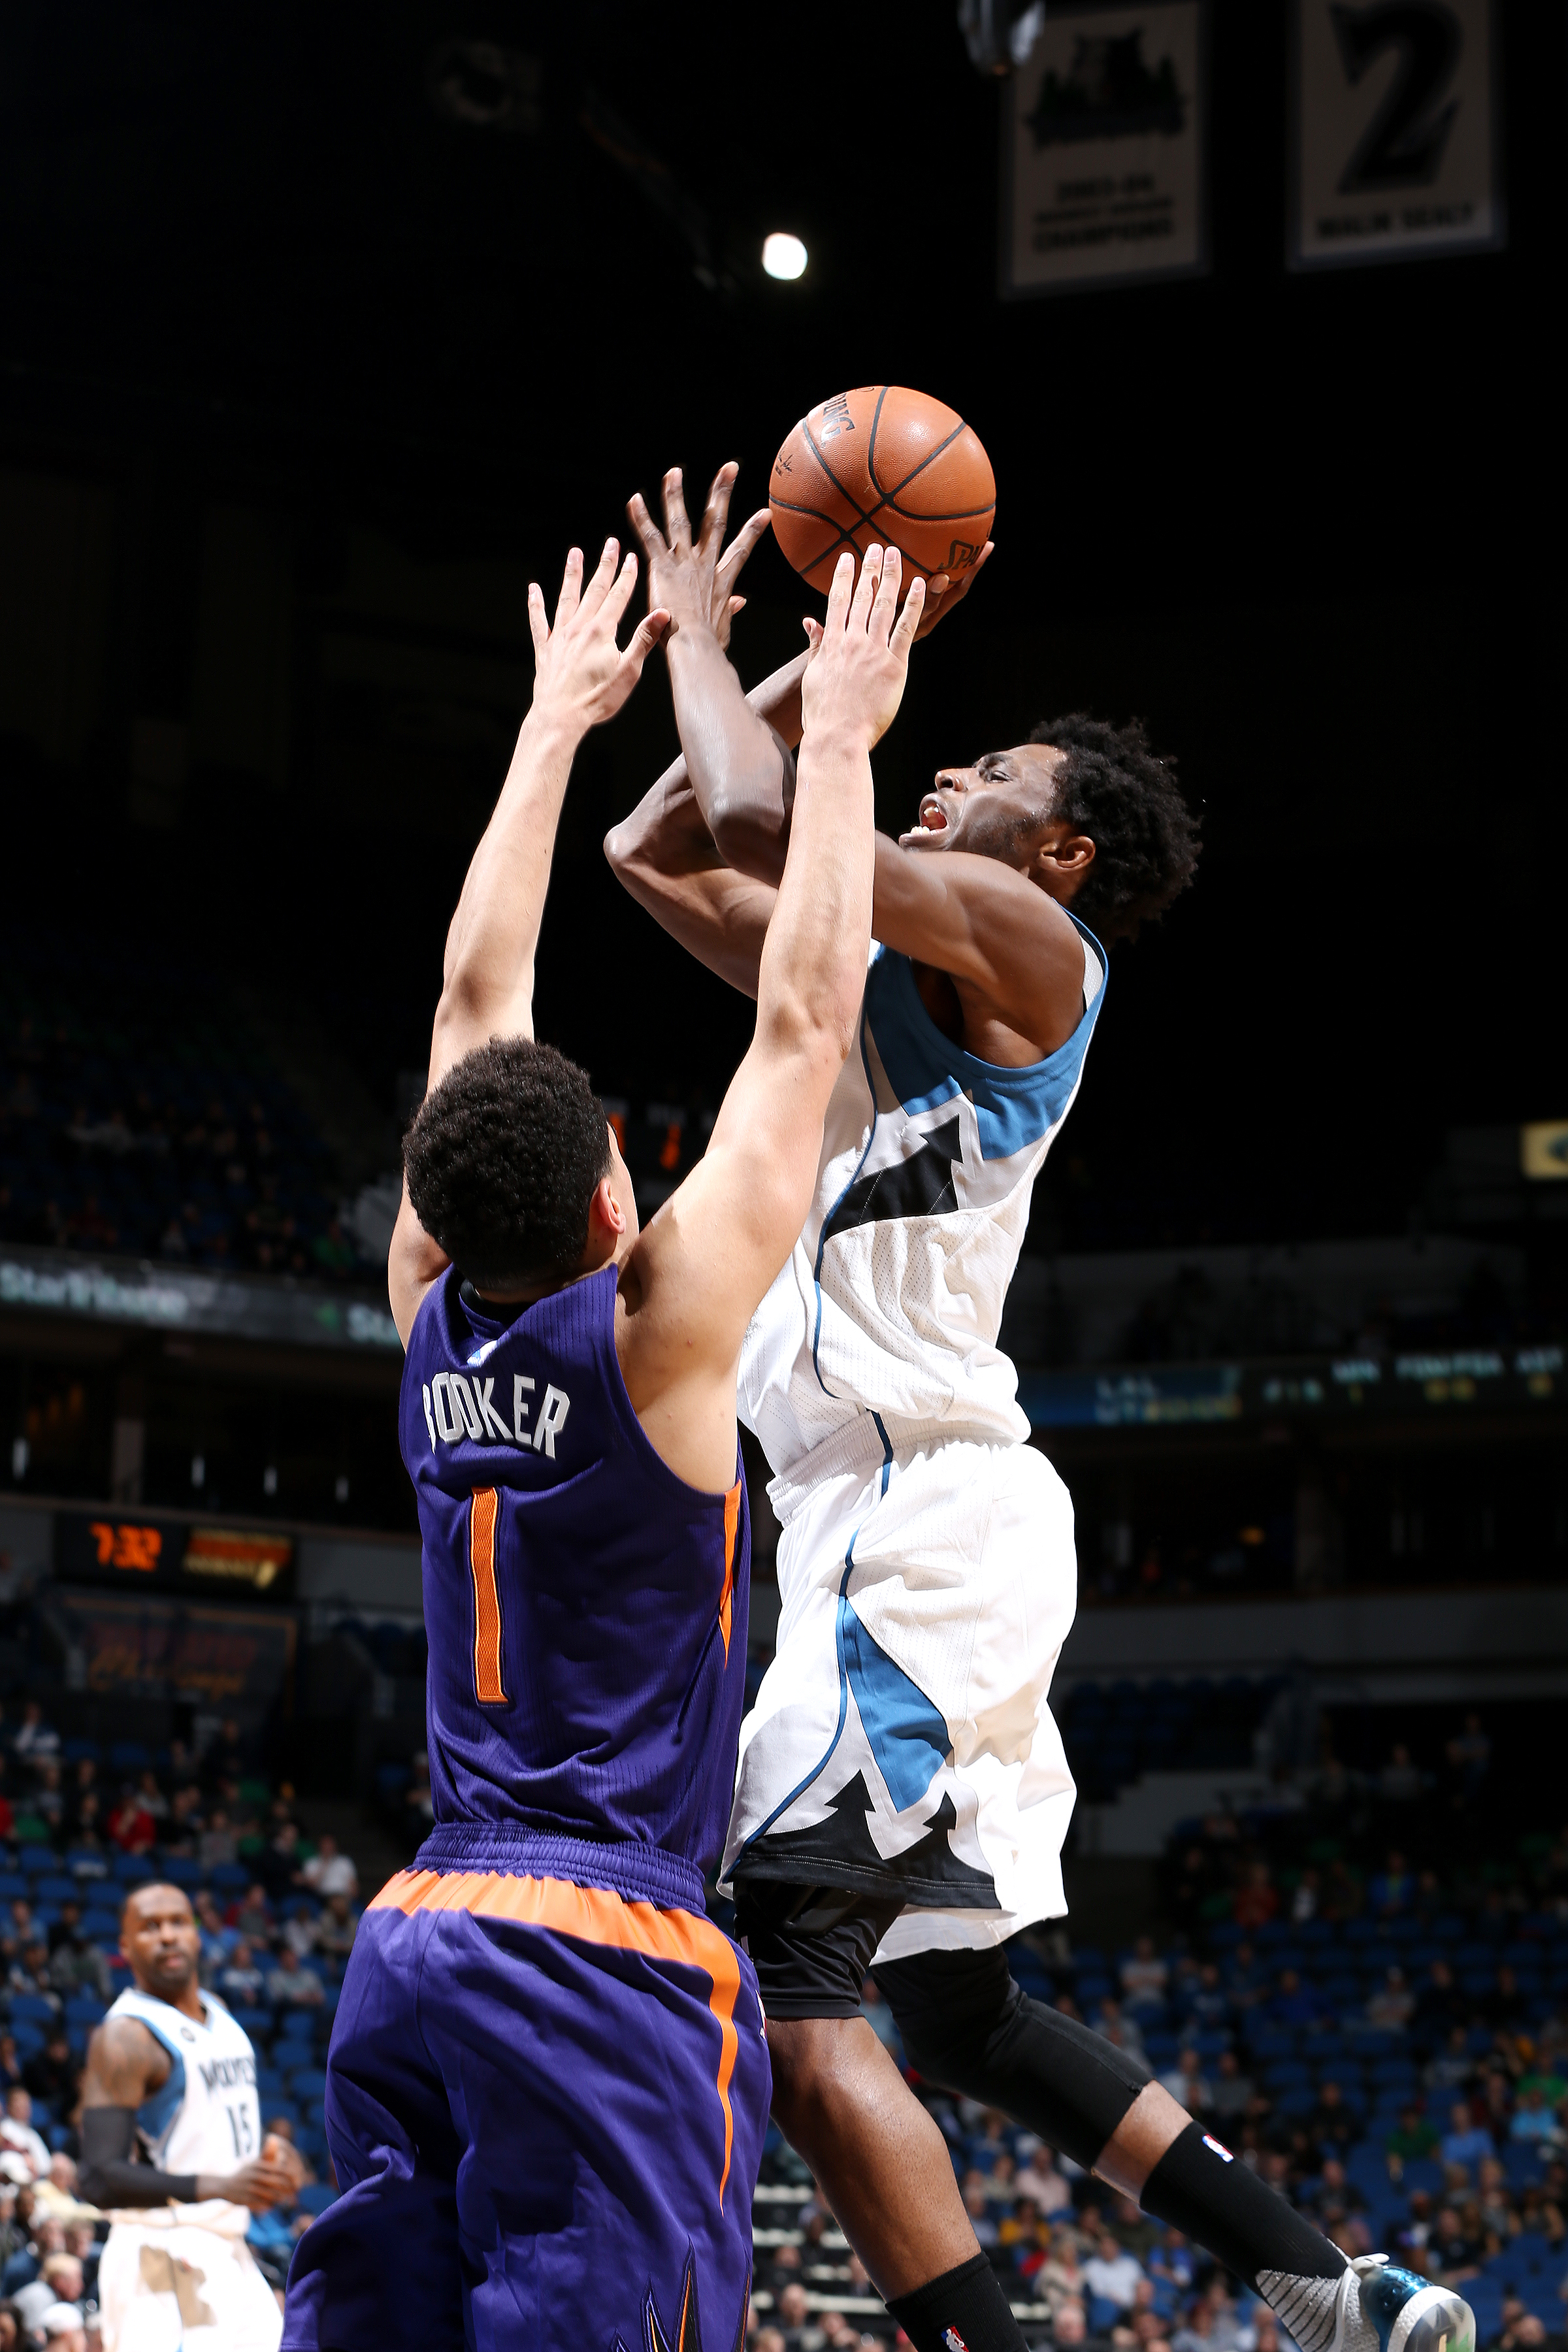 MINNEAPOLIS, MN -  MARCH 28: Andrew Wiggins #22 of the Minnesota Timberwolves shoots the ball during the game against the Phoenix Suns on March 28, 2016 at Target Center in Minneapolis, Minnesota. (Photo by David Sherman/NBAE via Getty Images)